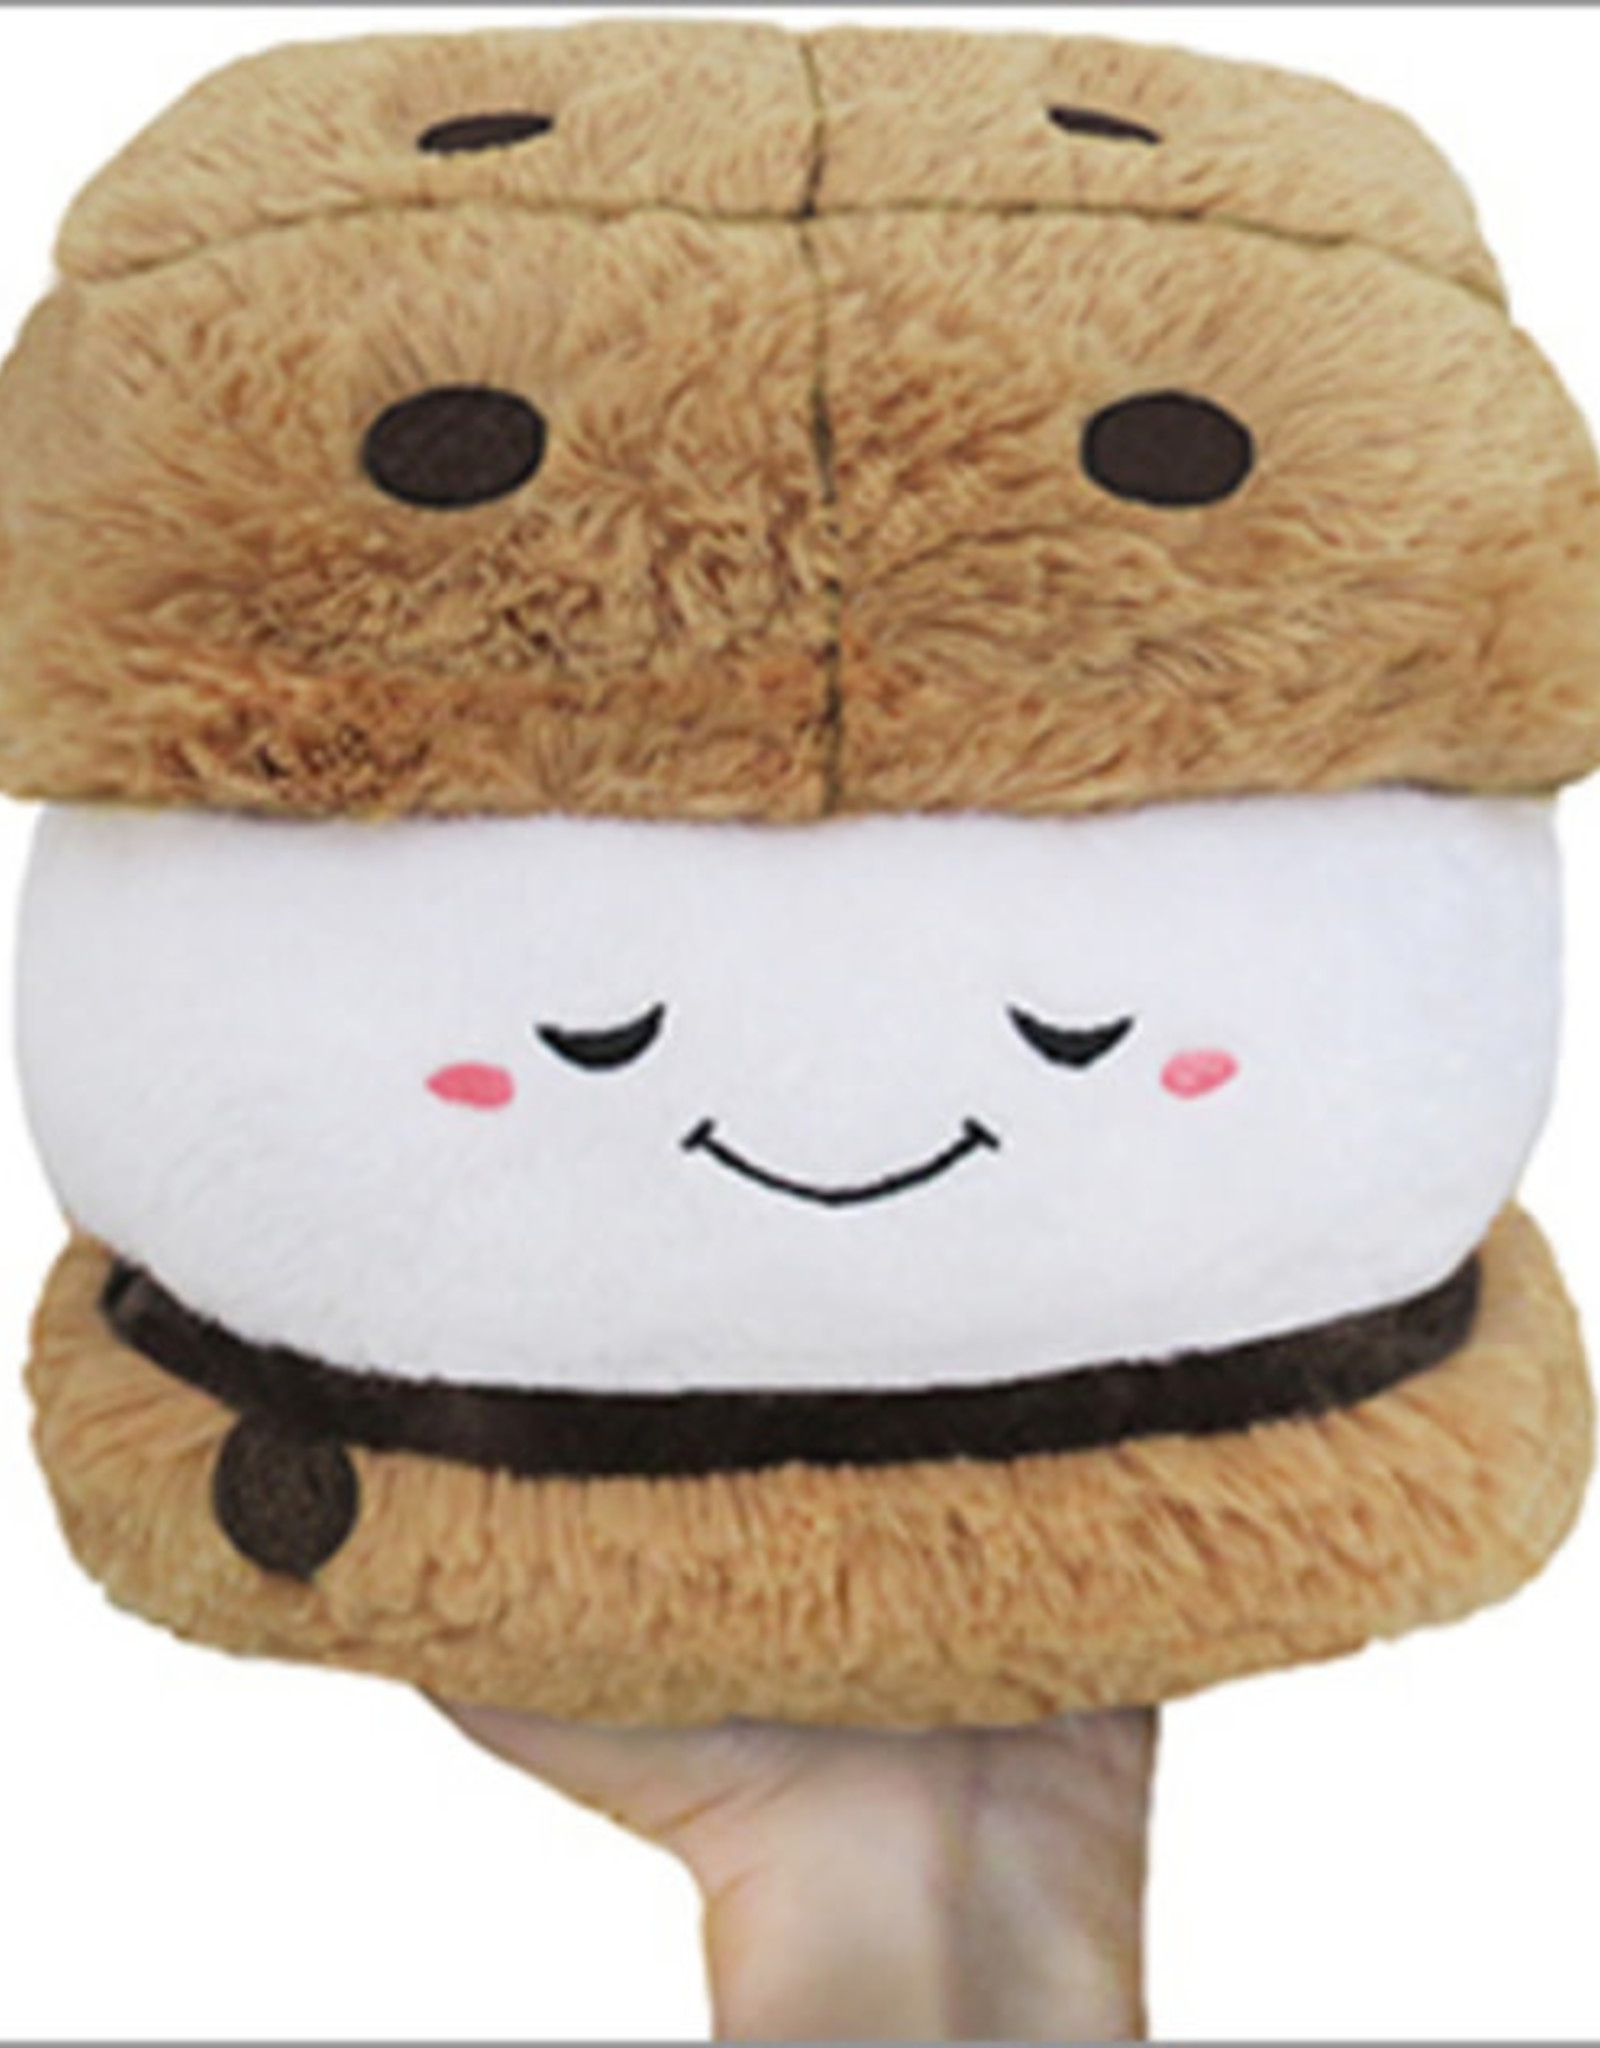 Squishable Mini Squishable S'more